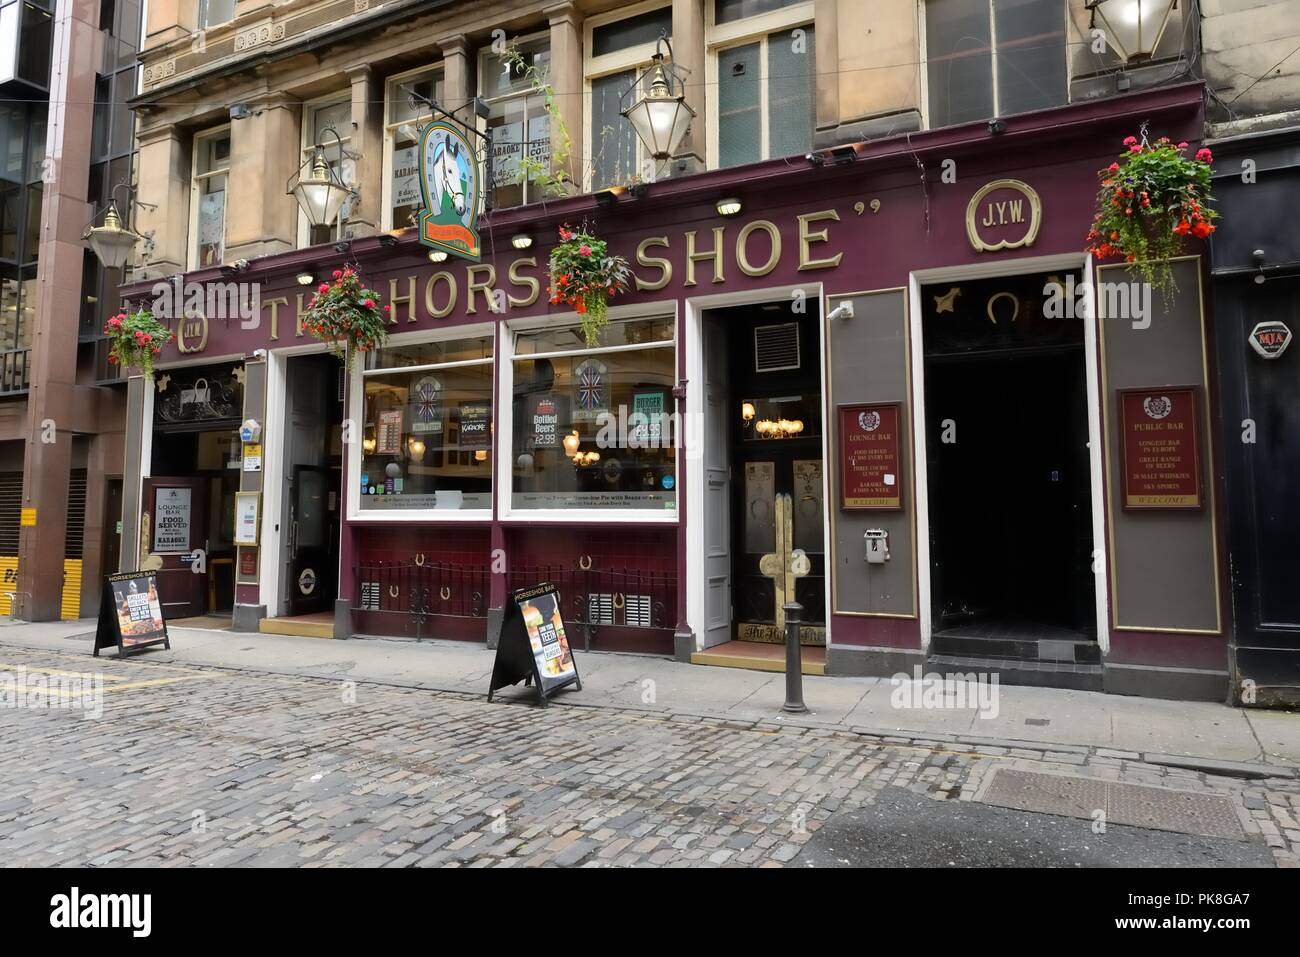 The famous Horse Shoe Bar in Glasgow's Drury Street since 1884, Scotland, UK - Stock Image